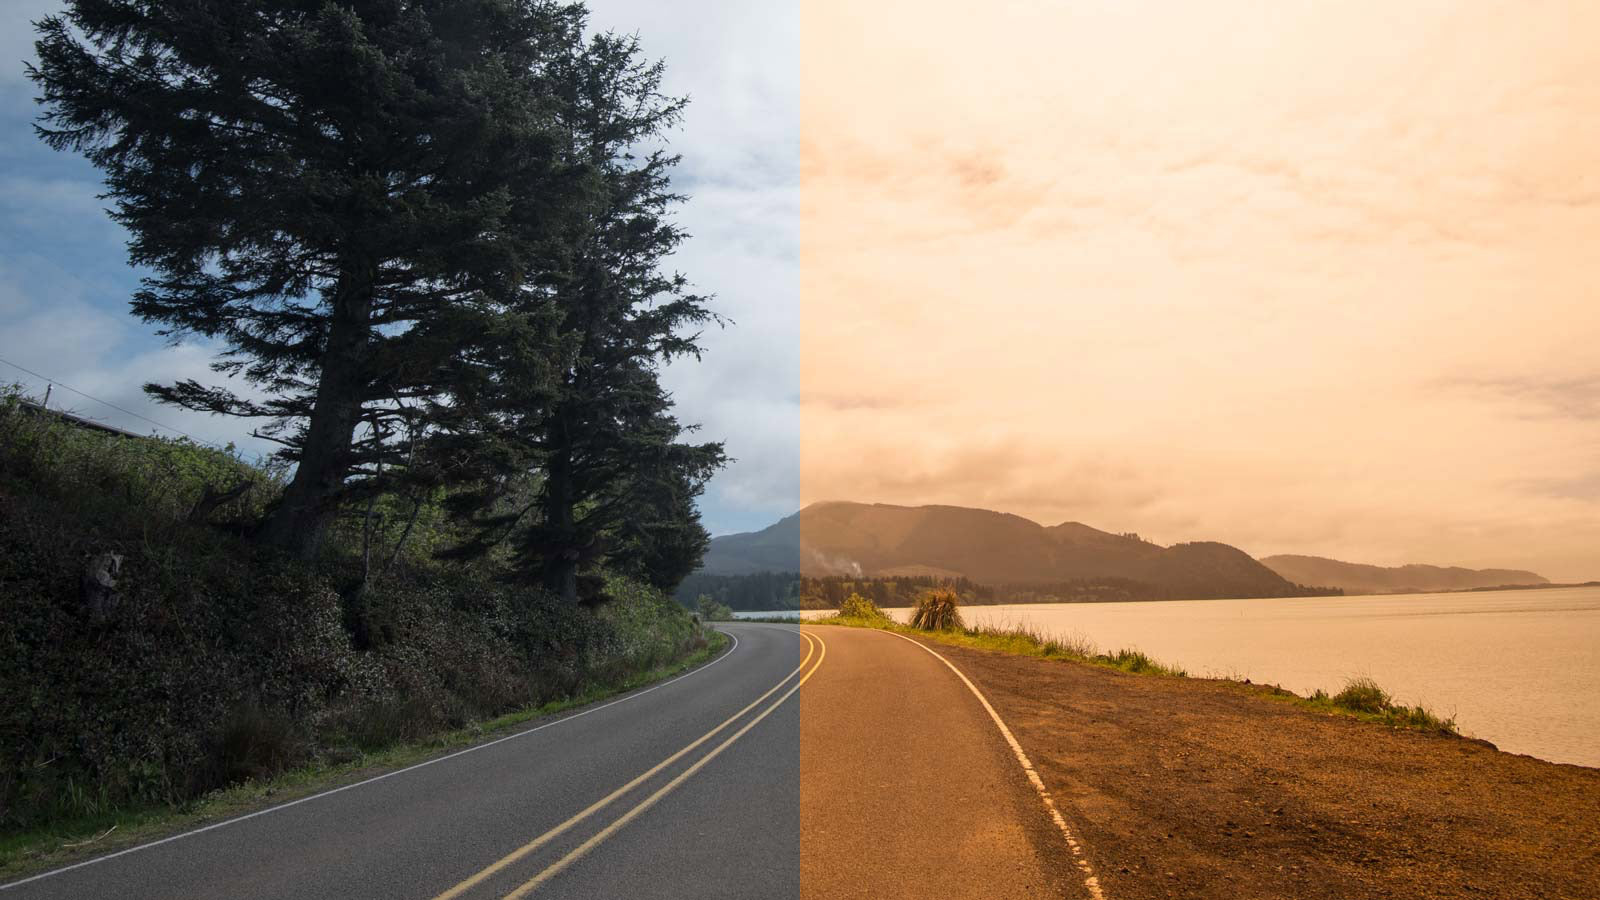 View of the road seen with and without the Tracer Orange lens